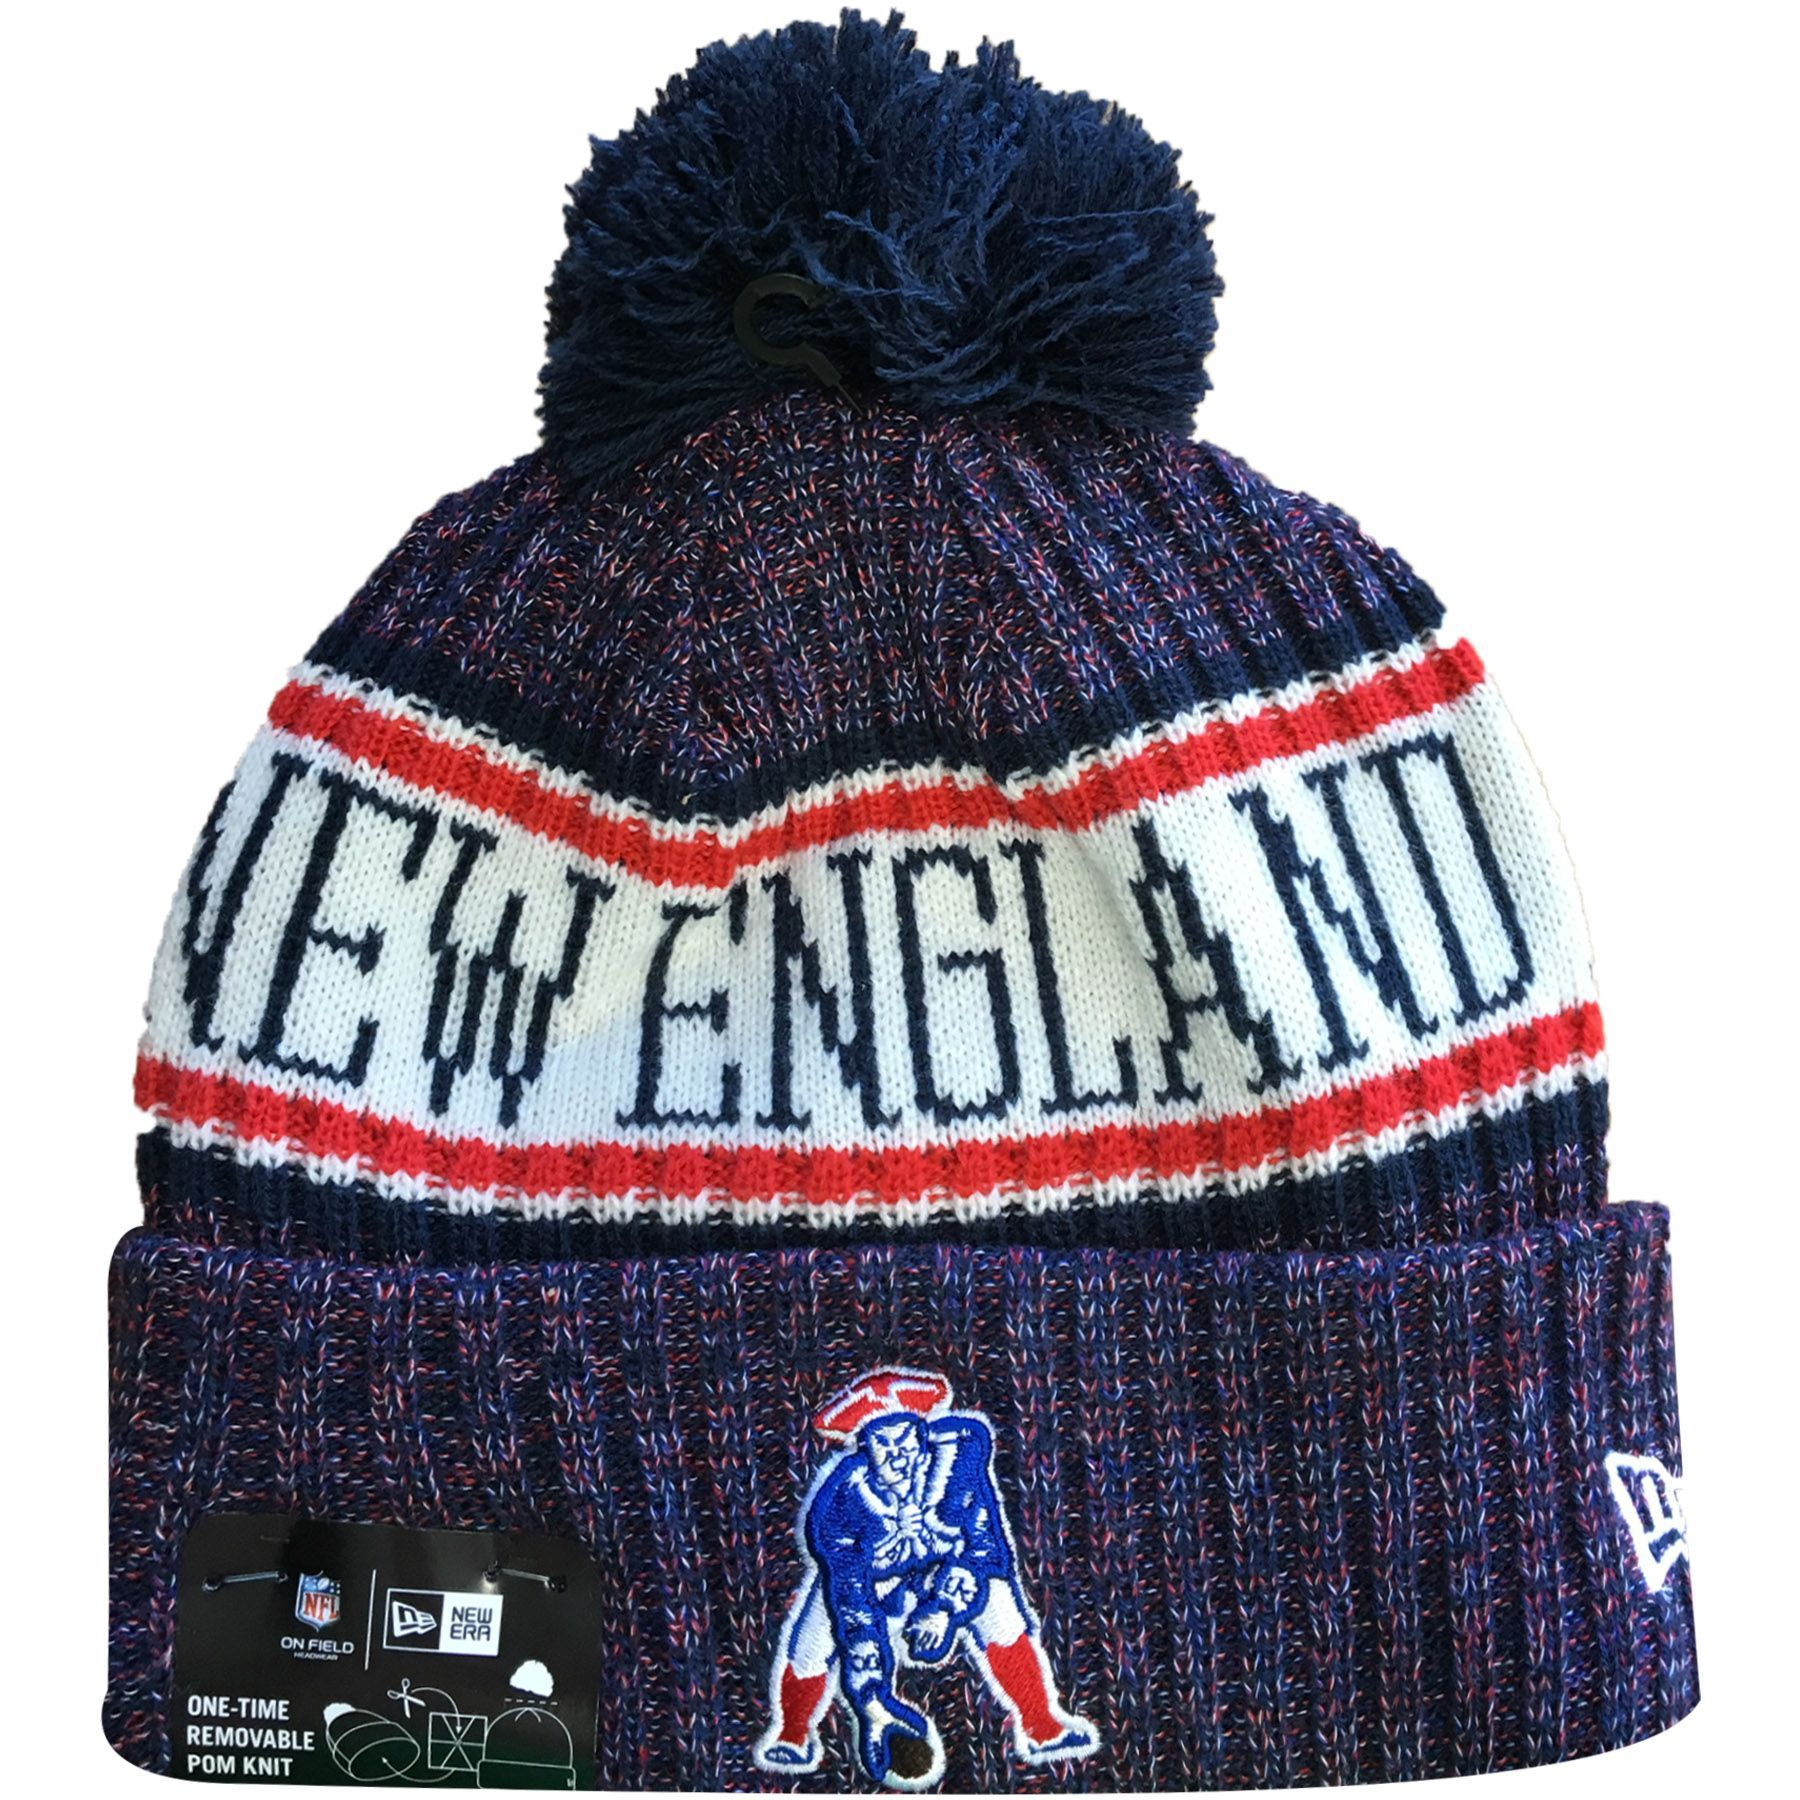 Rep The Pats With The 2018 On Field New England Patriots Sideline Beanie Available Online At Capswag Com N Knitted Hats Knit Hat For Men New England Patriots